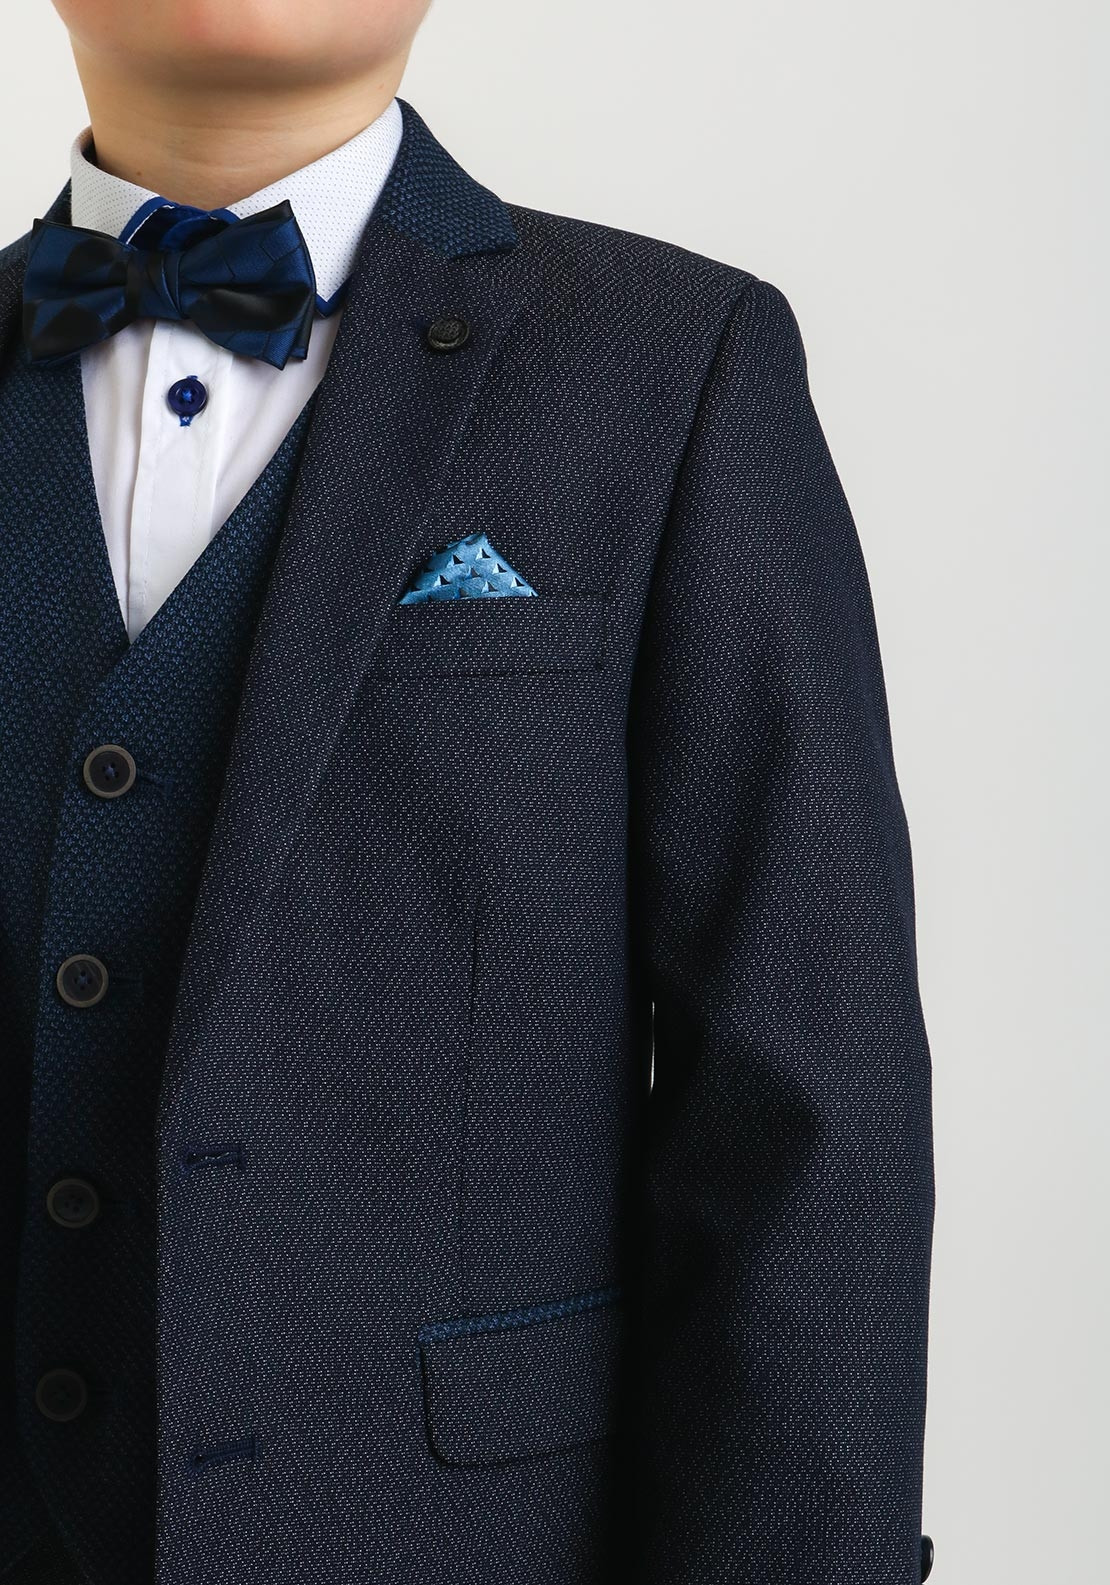 f35eb7f7e2de26 1880 Club Woven Two Piece Suit, Dark Navy. Be the first to review this  product